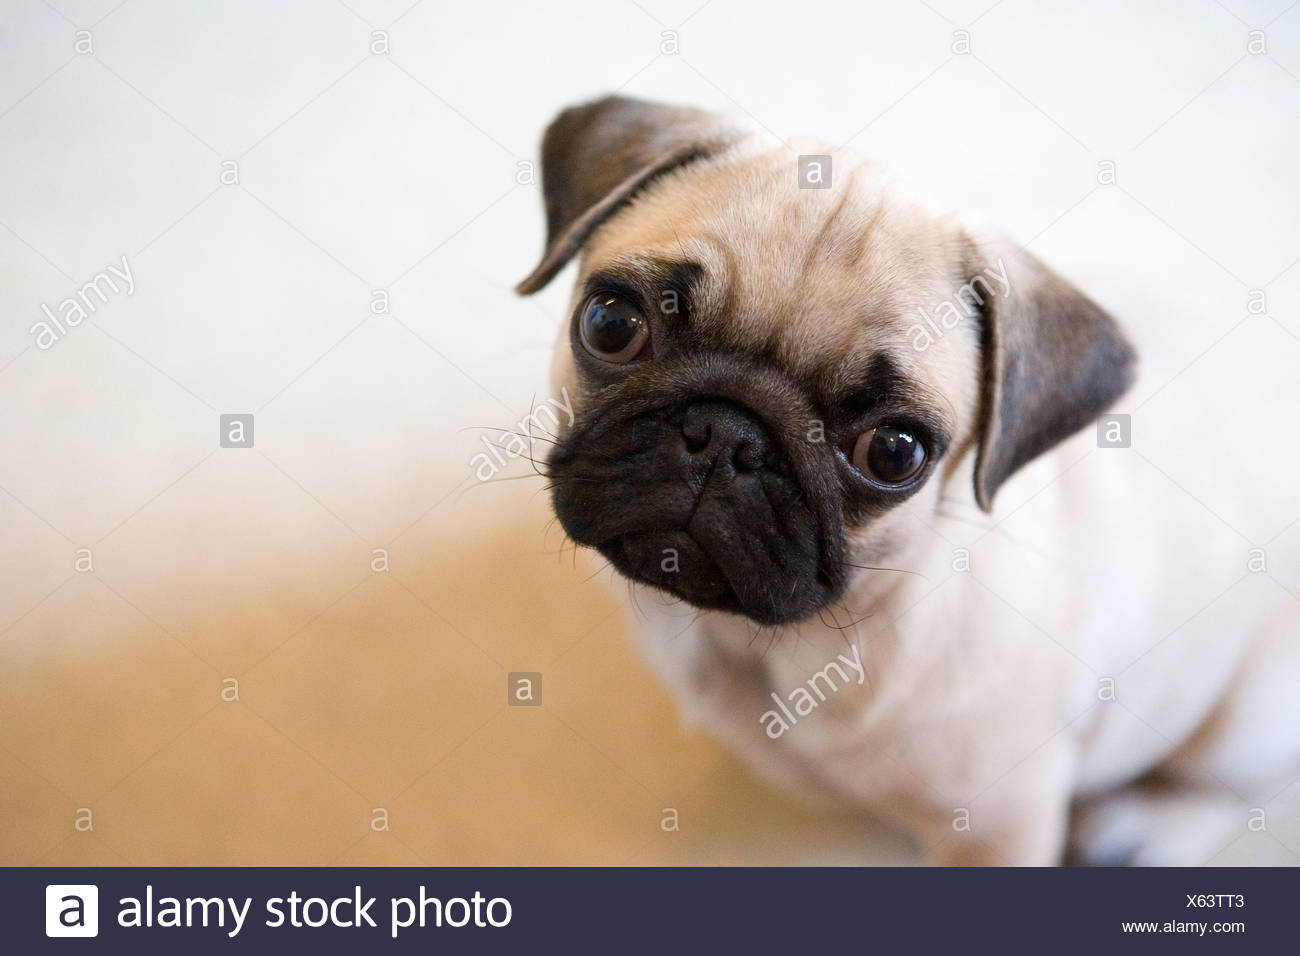 A pug puppy paying attention to the camera - Stock Image